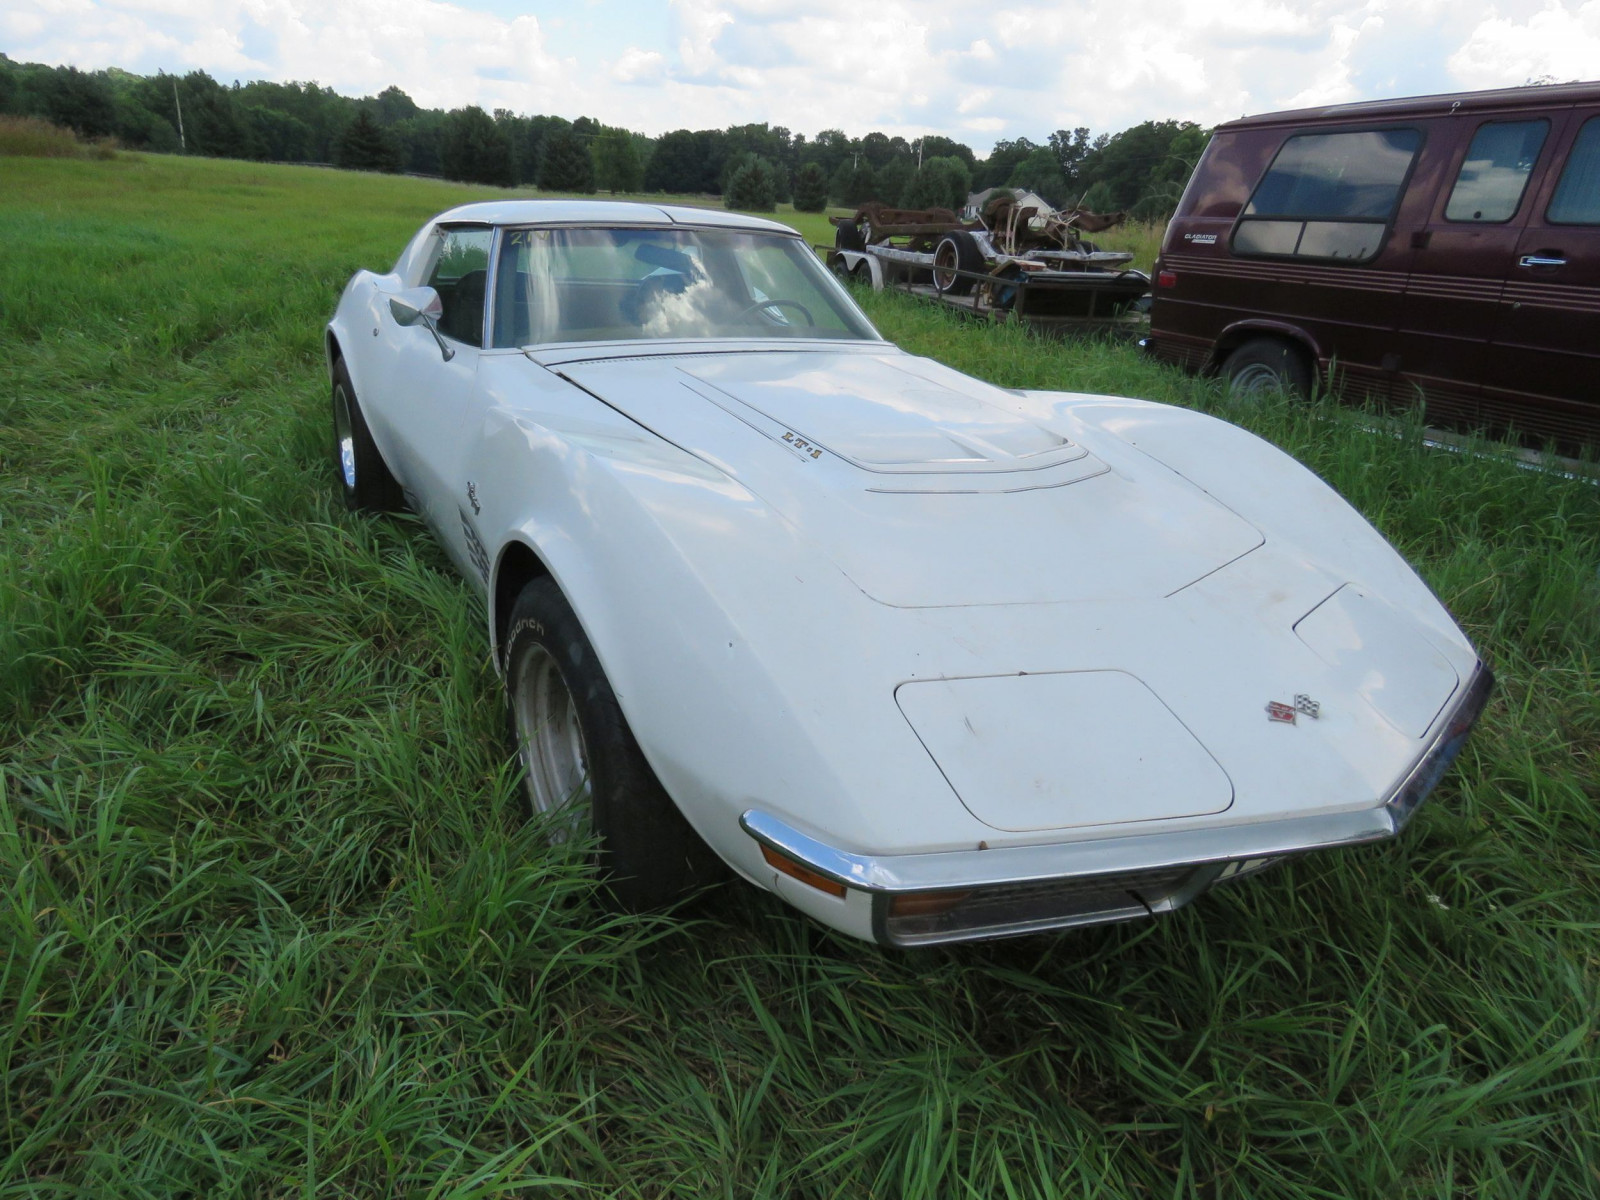 1971 Chevrolet Corvette Stingray Coupe - Image 3